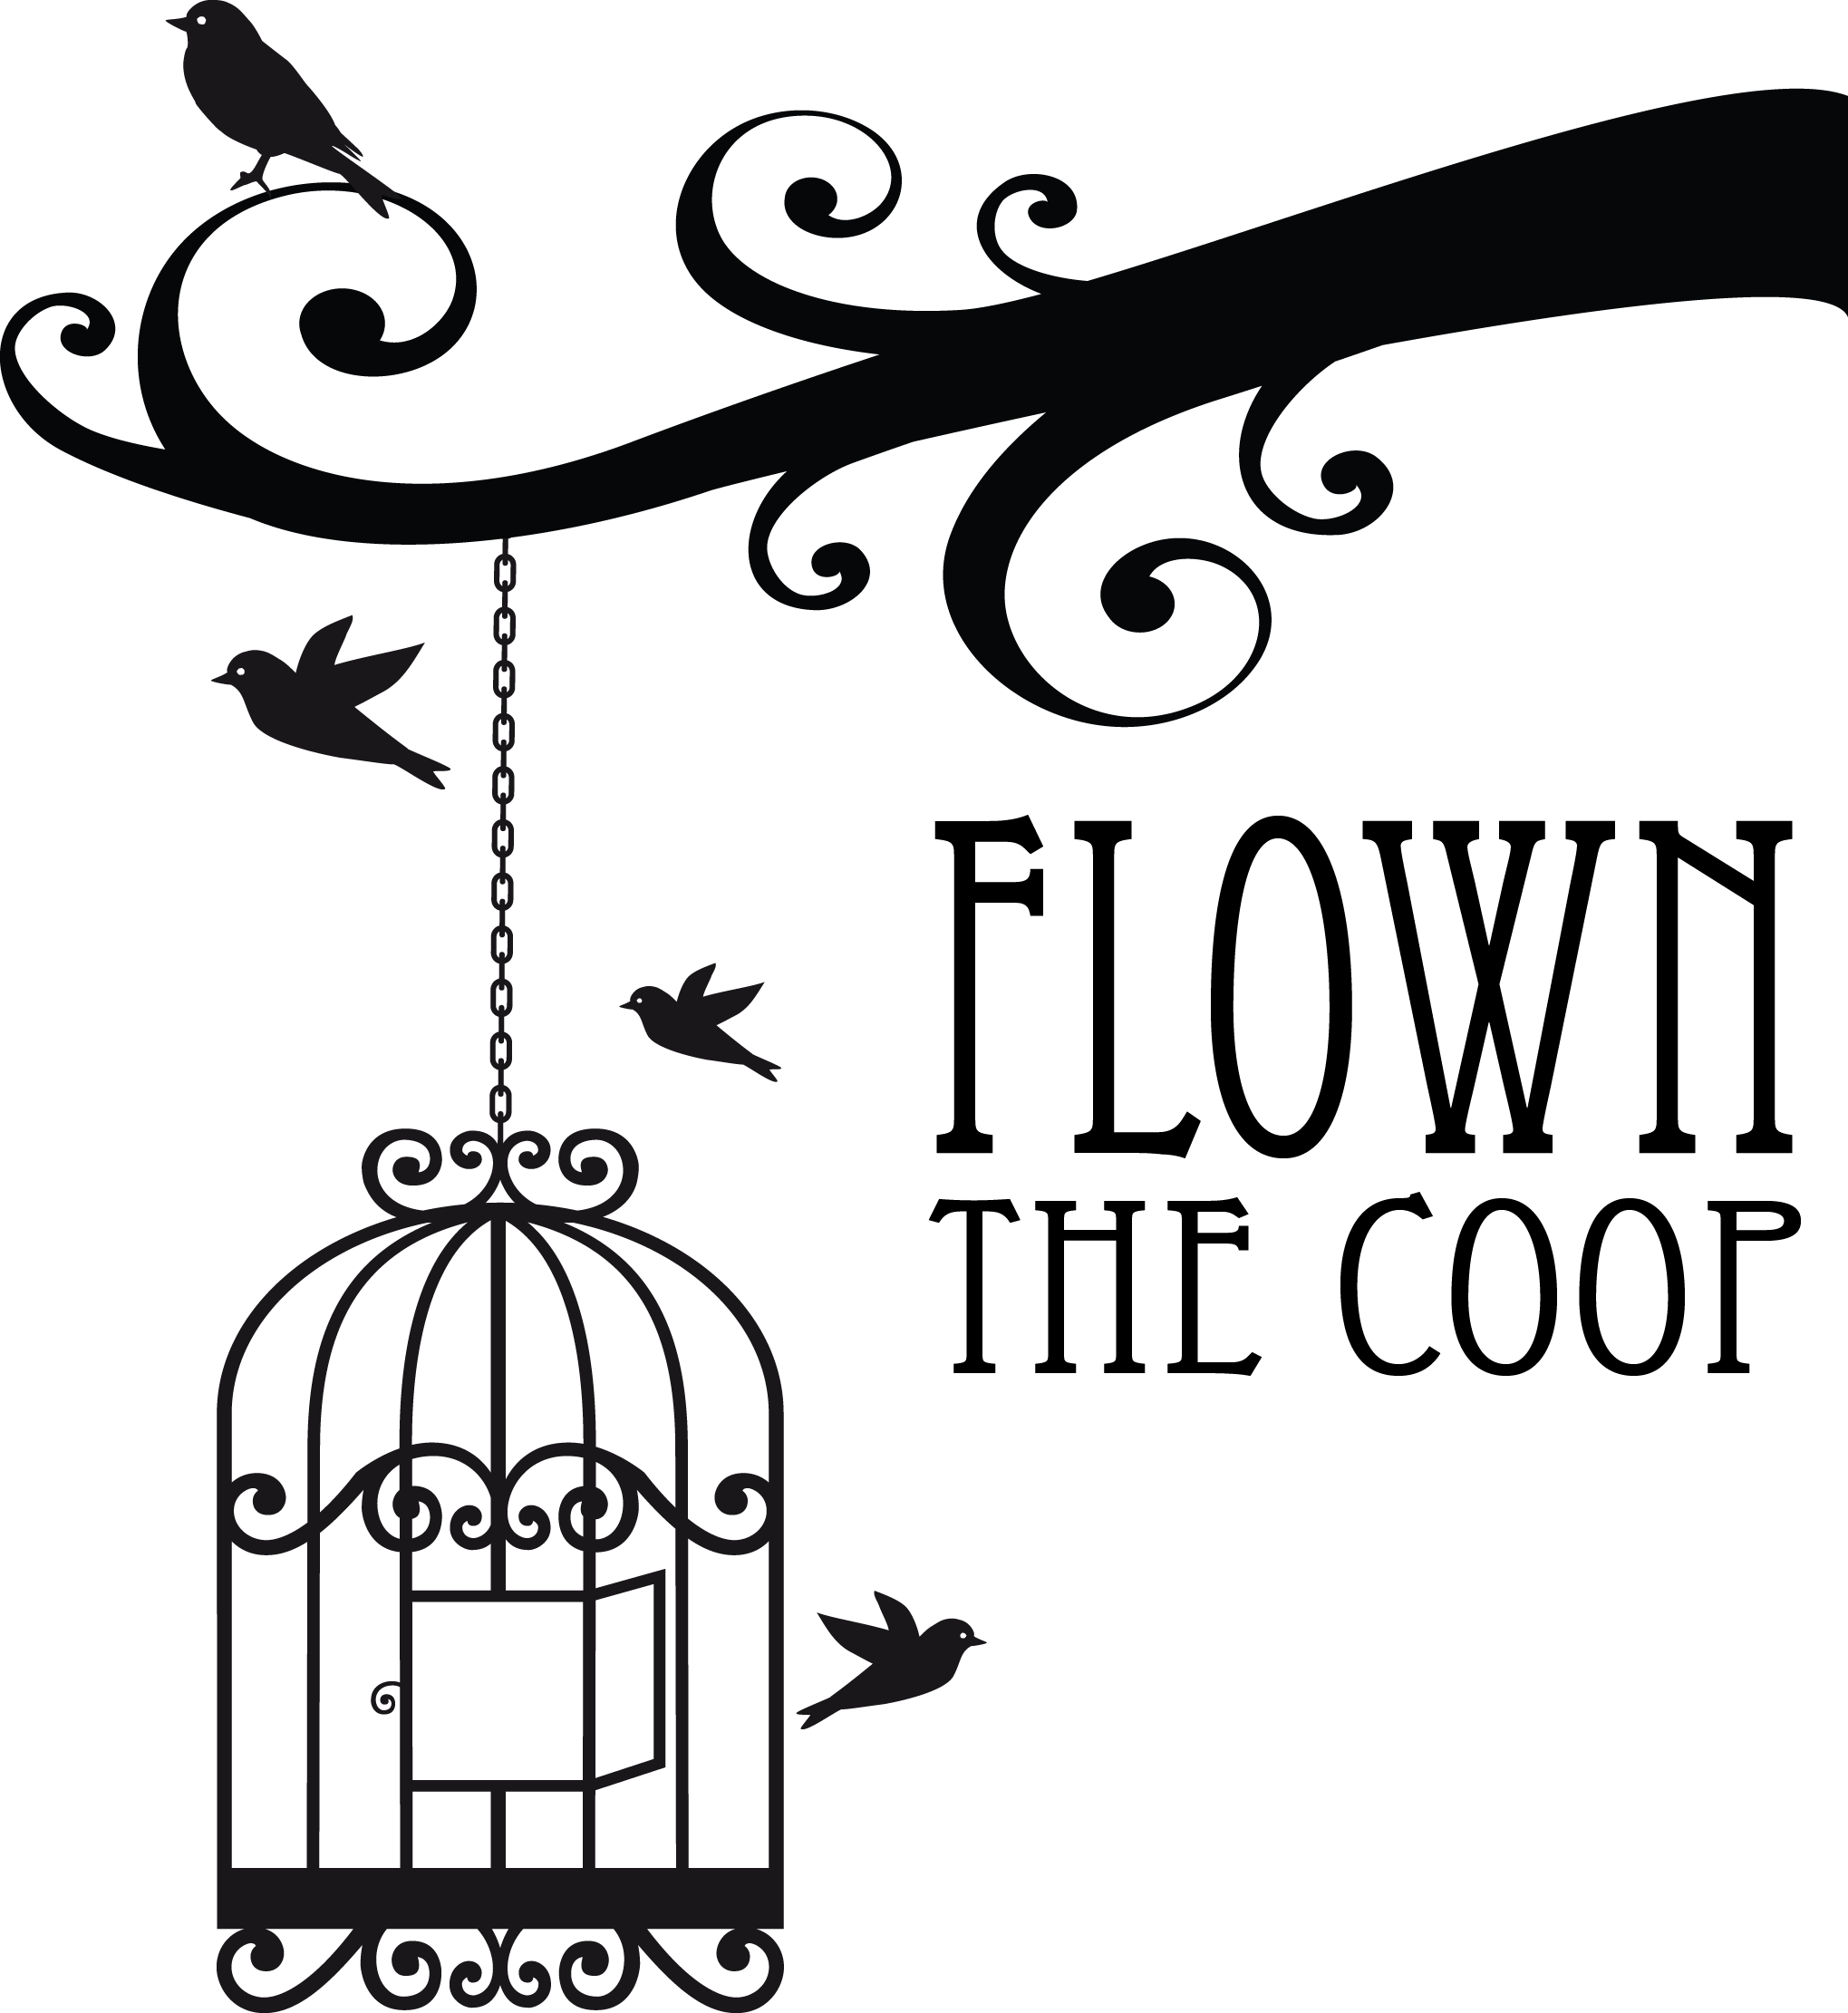 Flown The Coop is a creative lifestyle destination promoting wellness, wine and the pursuit of dreams.